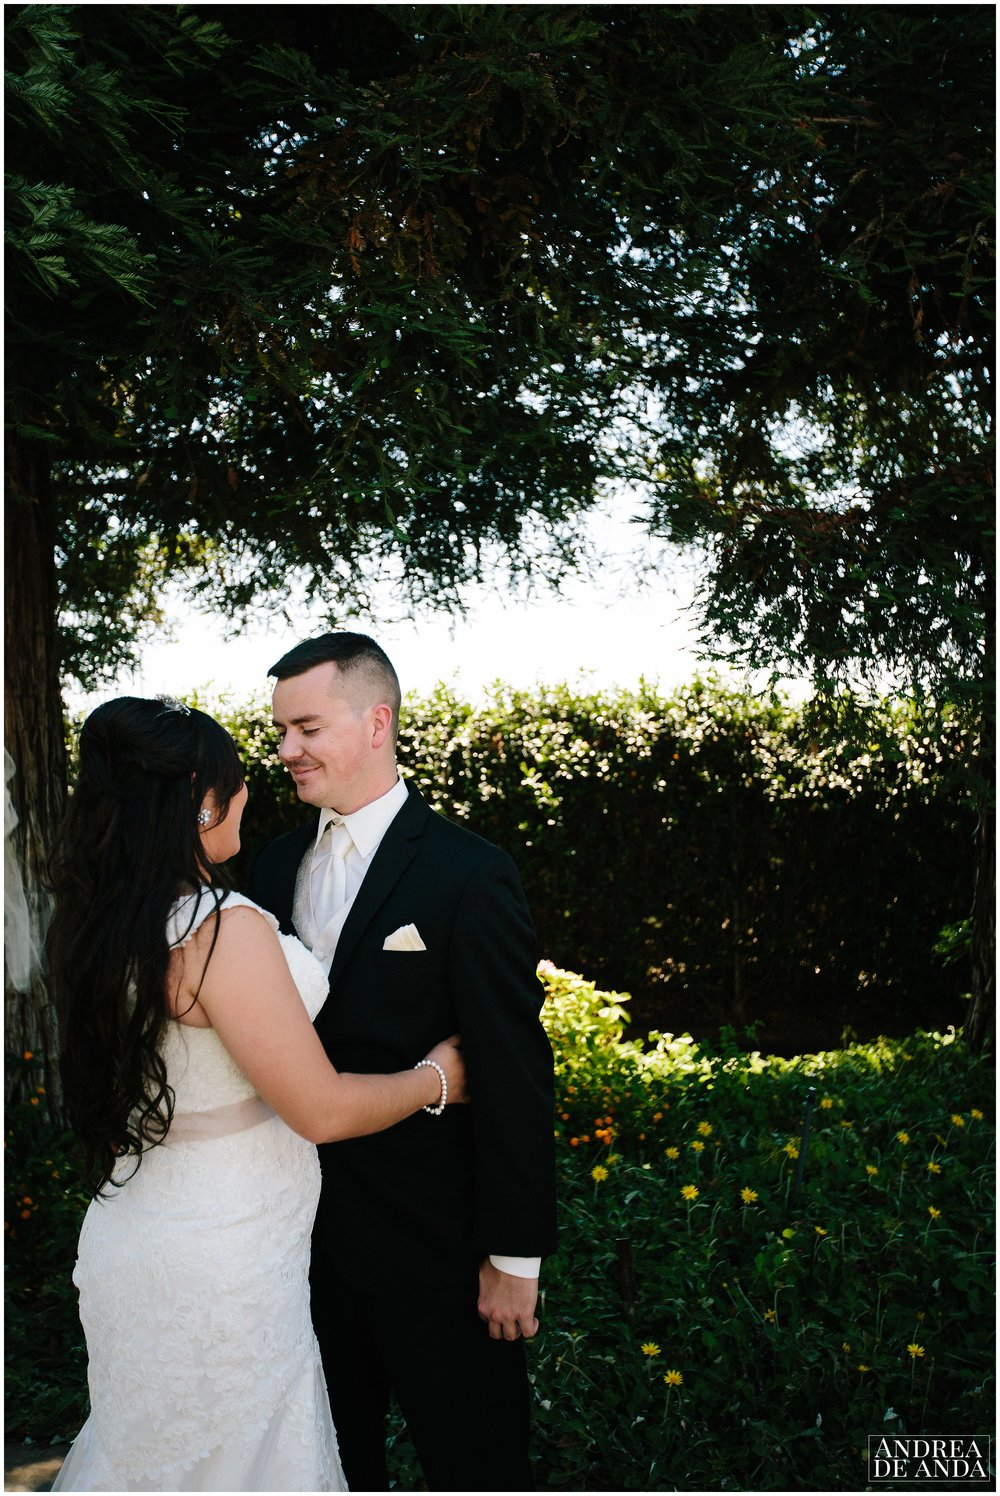 Portrait of Bride and Groom together after their first look